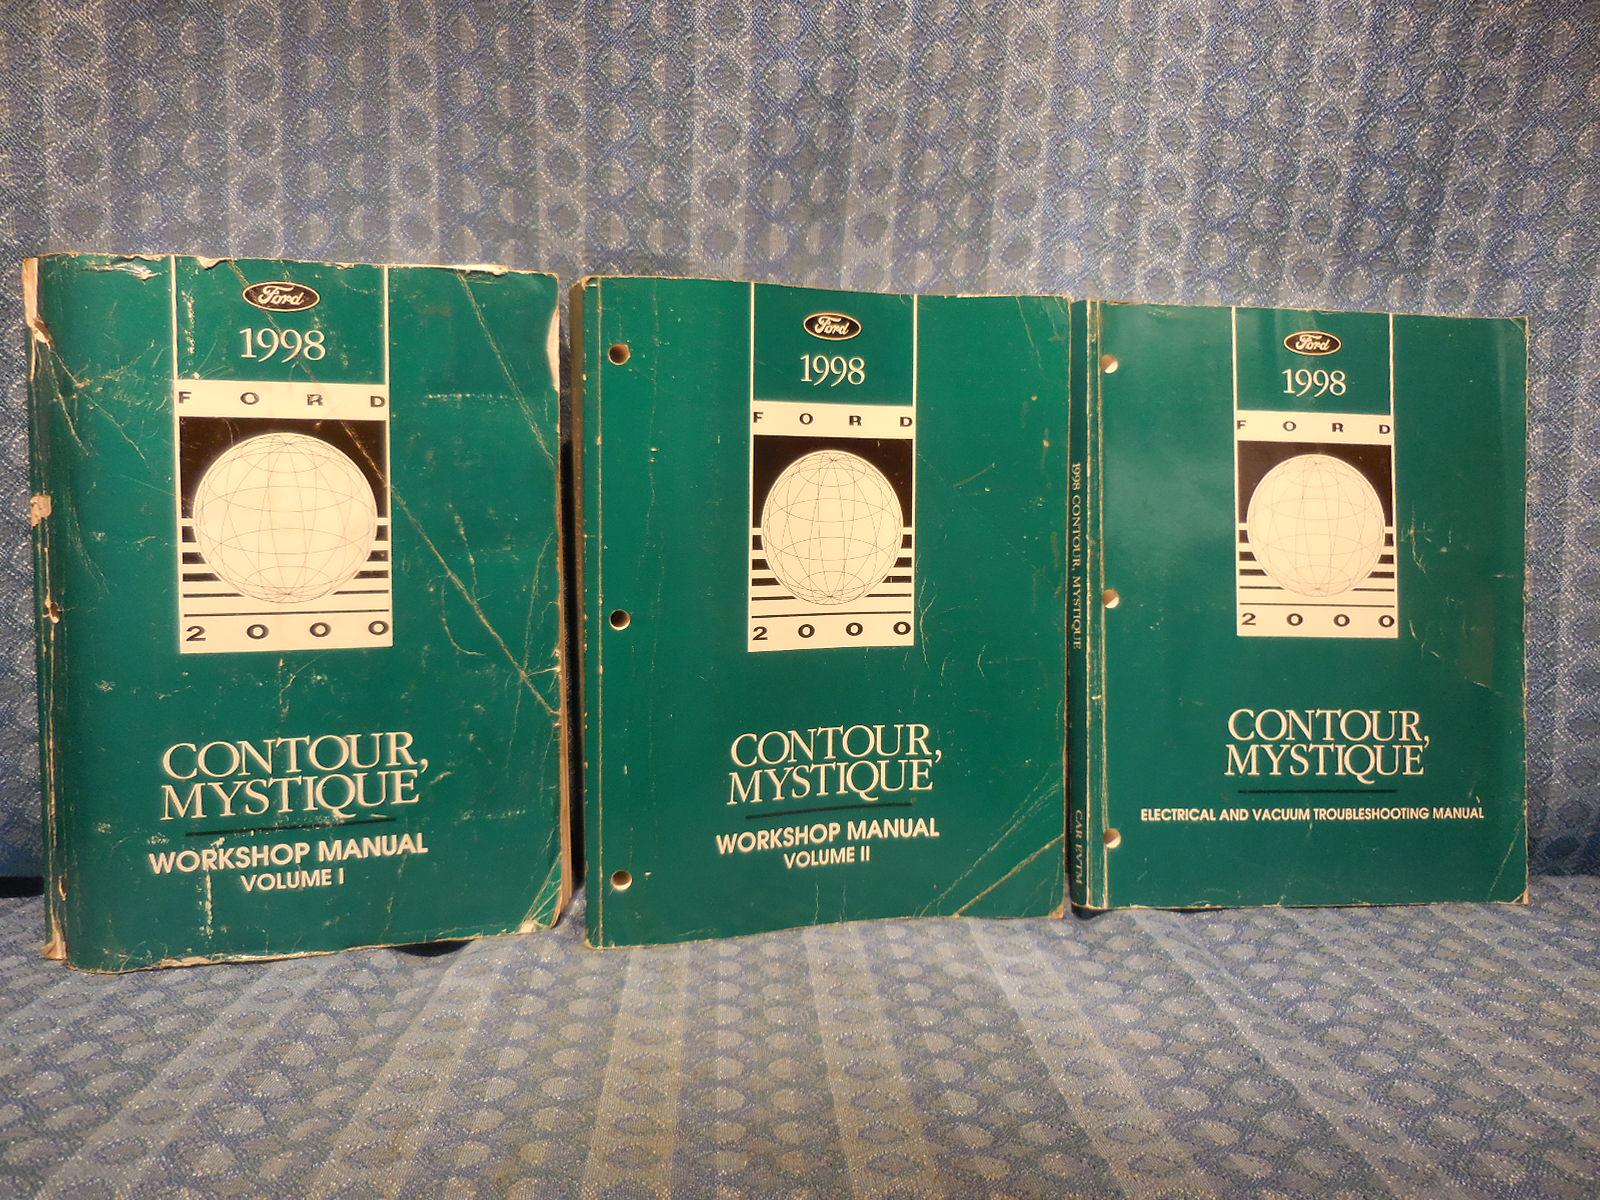 1998 Ford Contour Mercury Mystique OEM Original Workshop Manual 3 Volume  Set - NOS Texas Parts, LLC - Antique Auto Parts